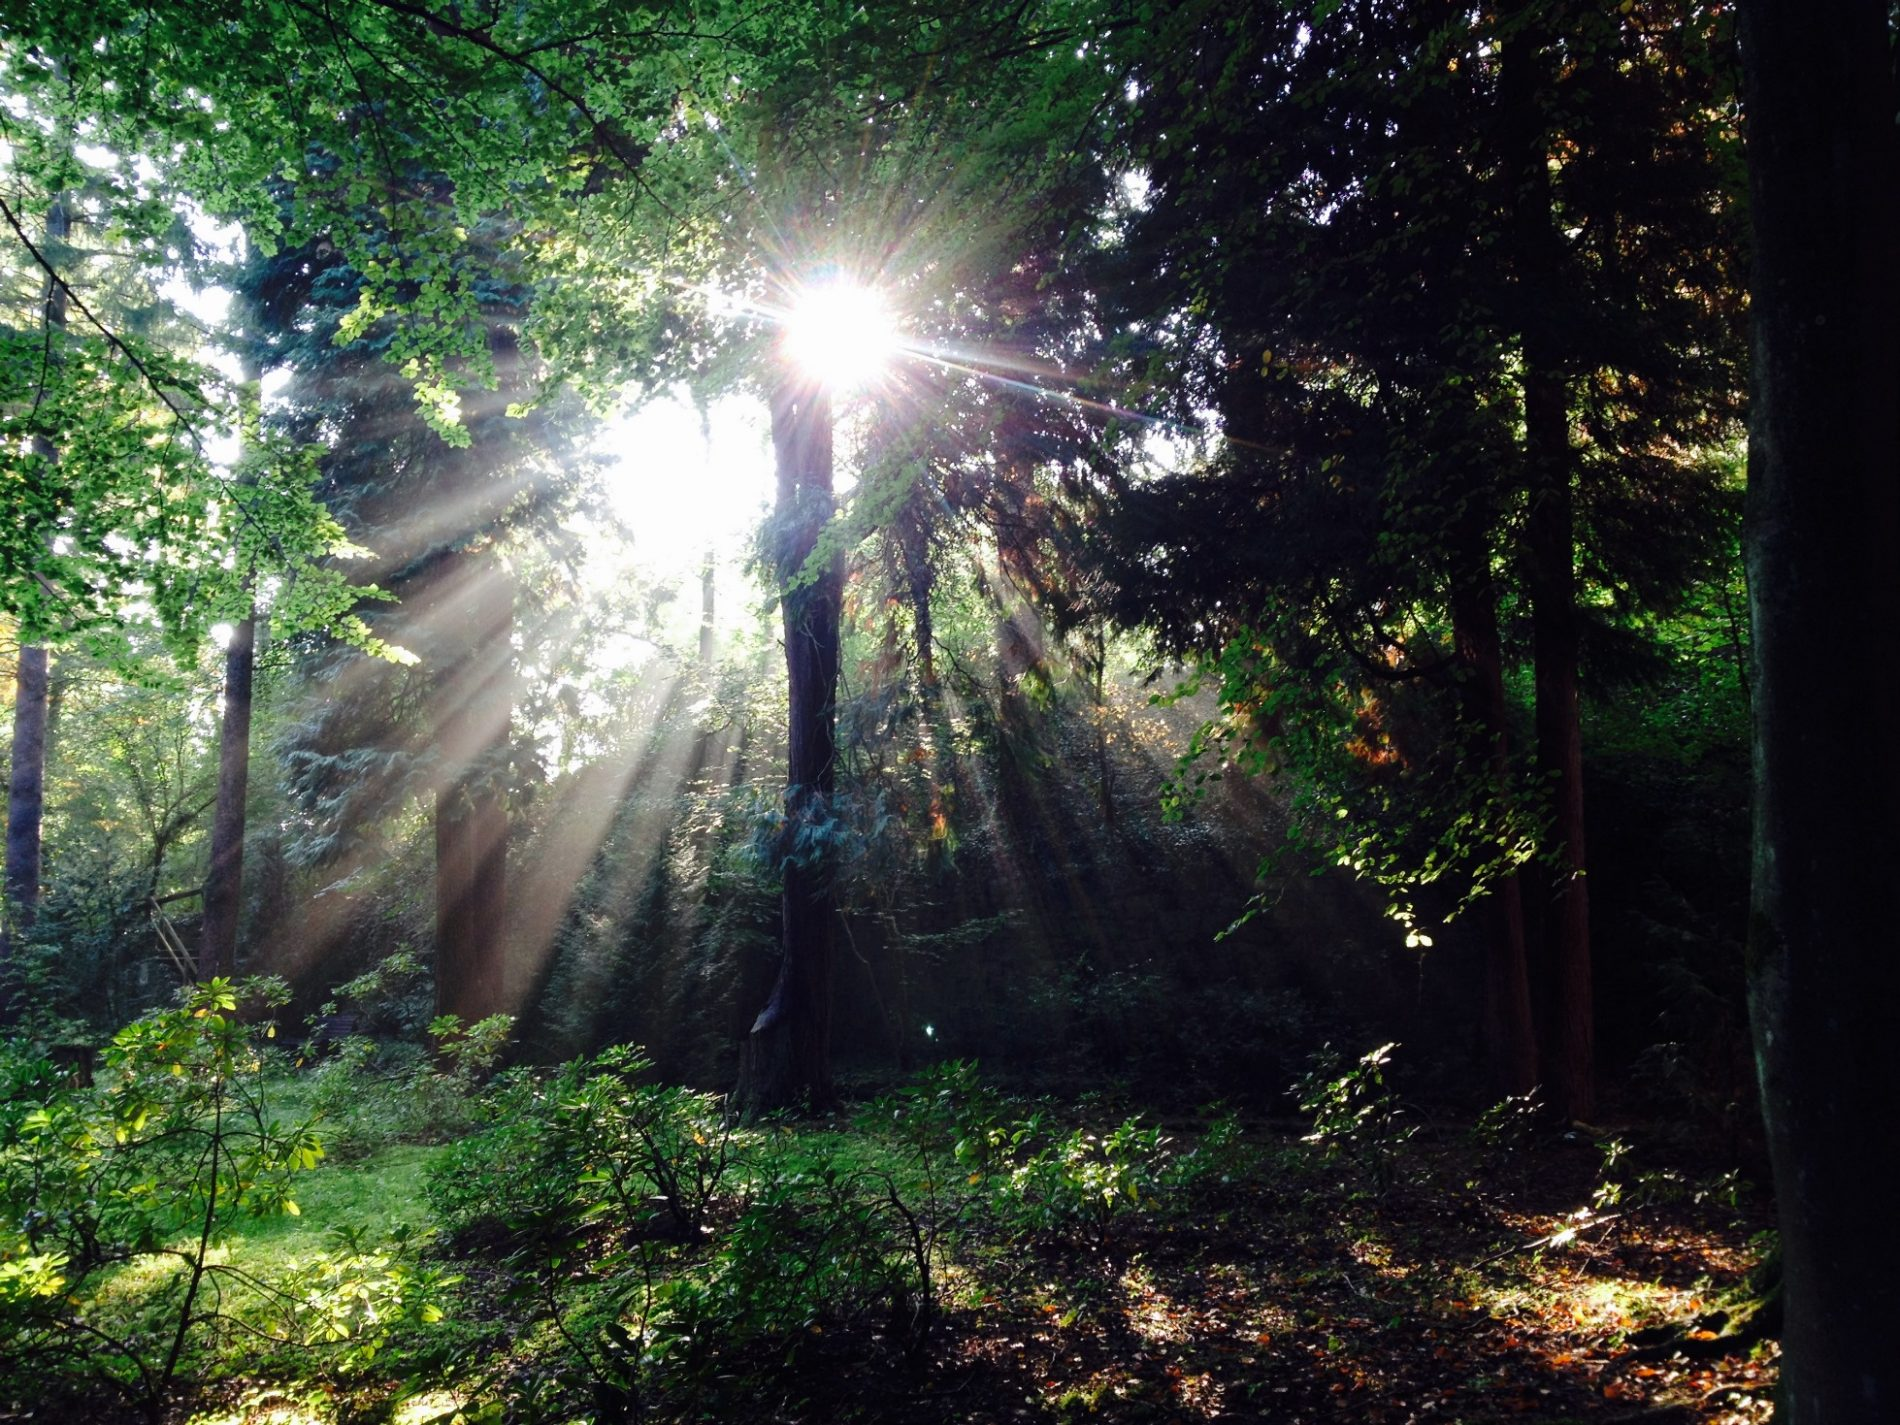 Forest Bathing as a healing bath for body and mind